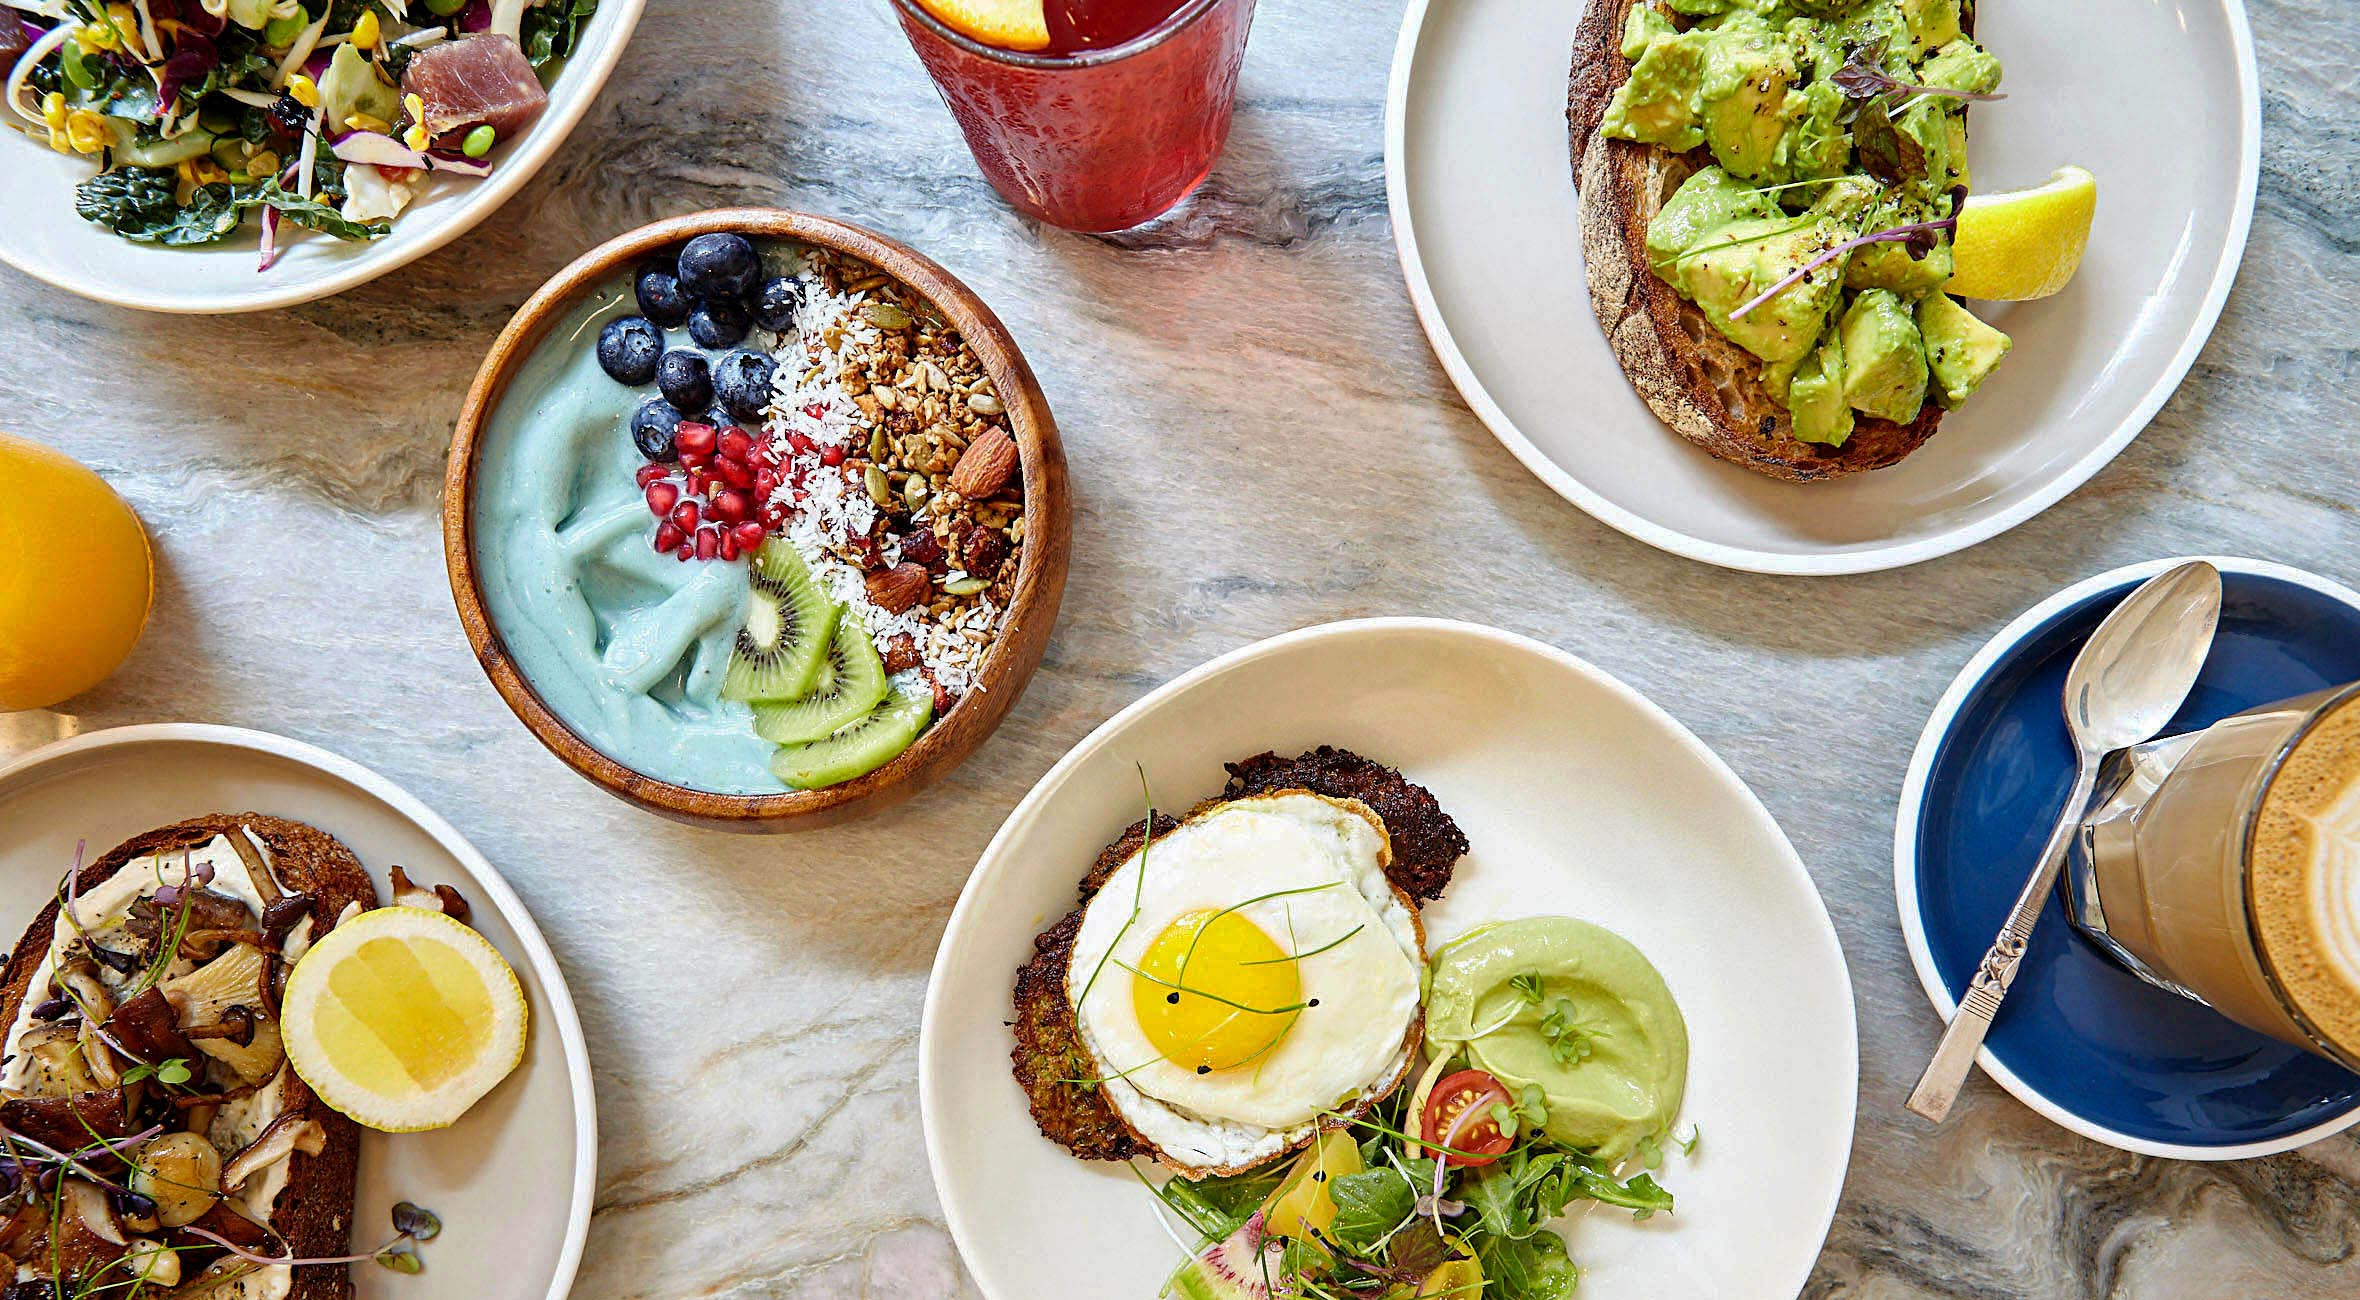 Pick Whatever You Like at Good Thanks – From Avocado Toasts to Smoothie Bowls, Green Fritters, Banana Bread etc.